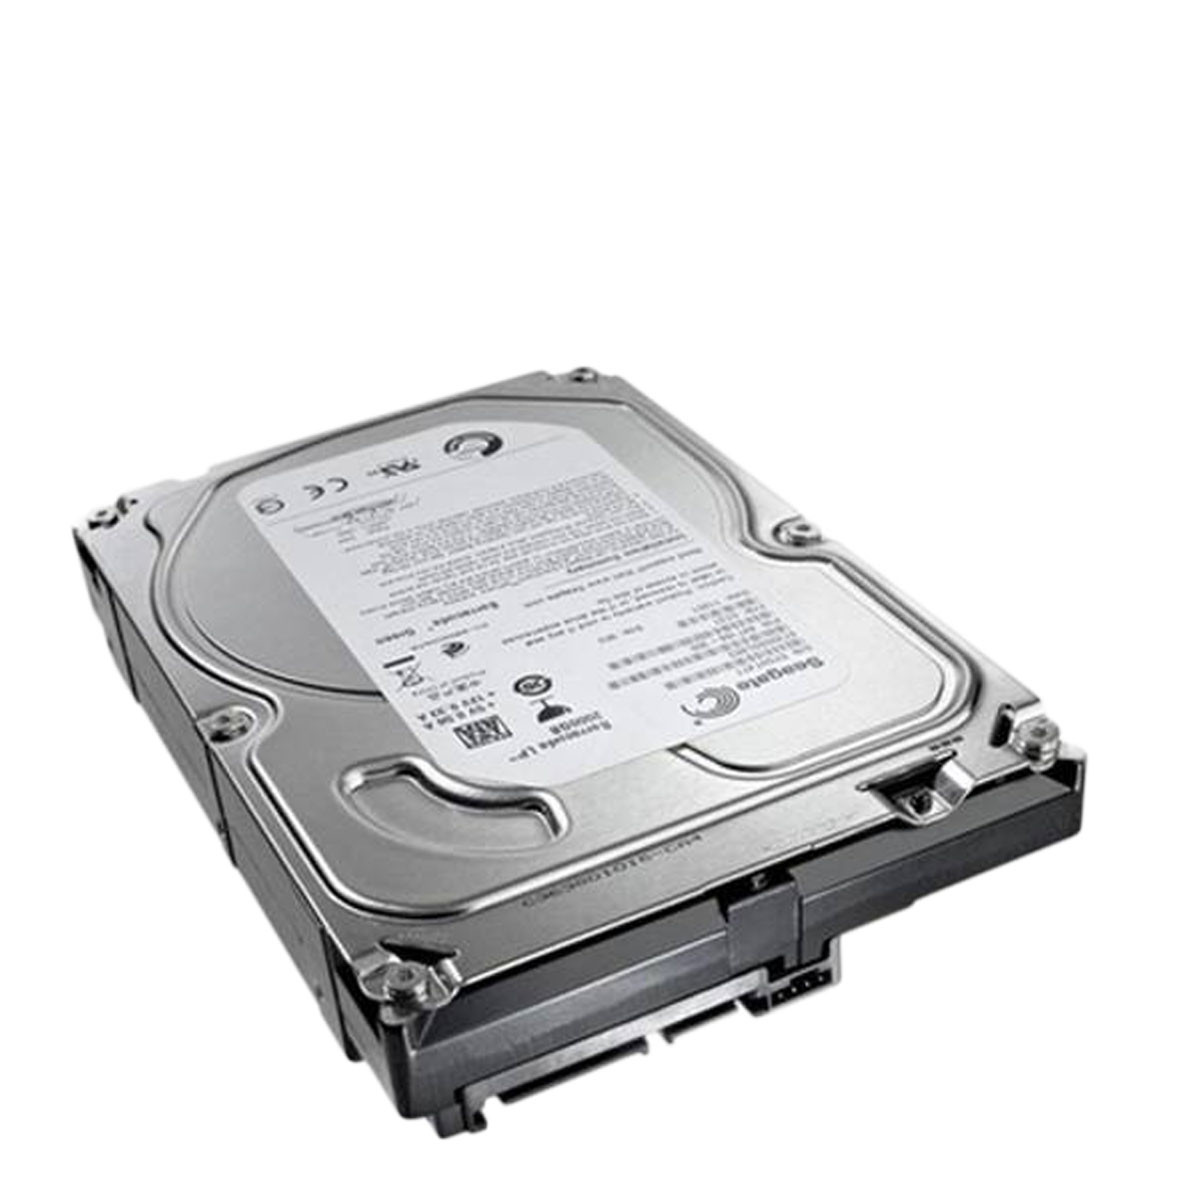 "HD Interno 500GB Seagate Slim ST3500410SV 3,5"" (polegadas) 5.900RPM 64MB SATA 2"